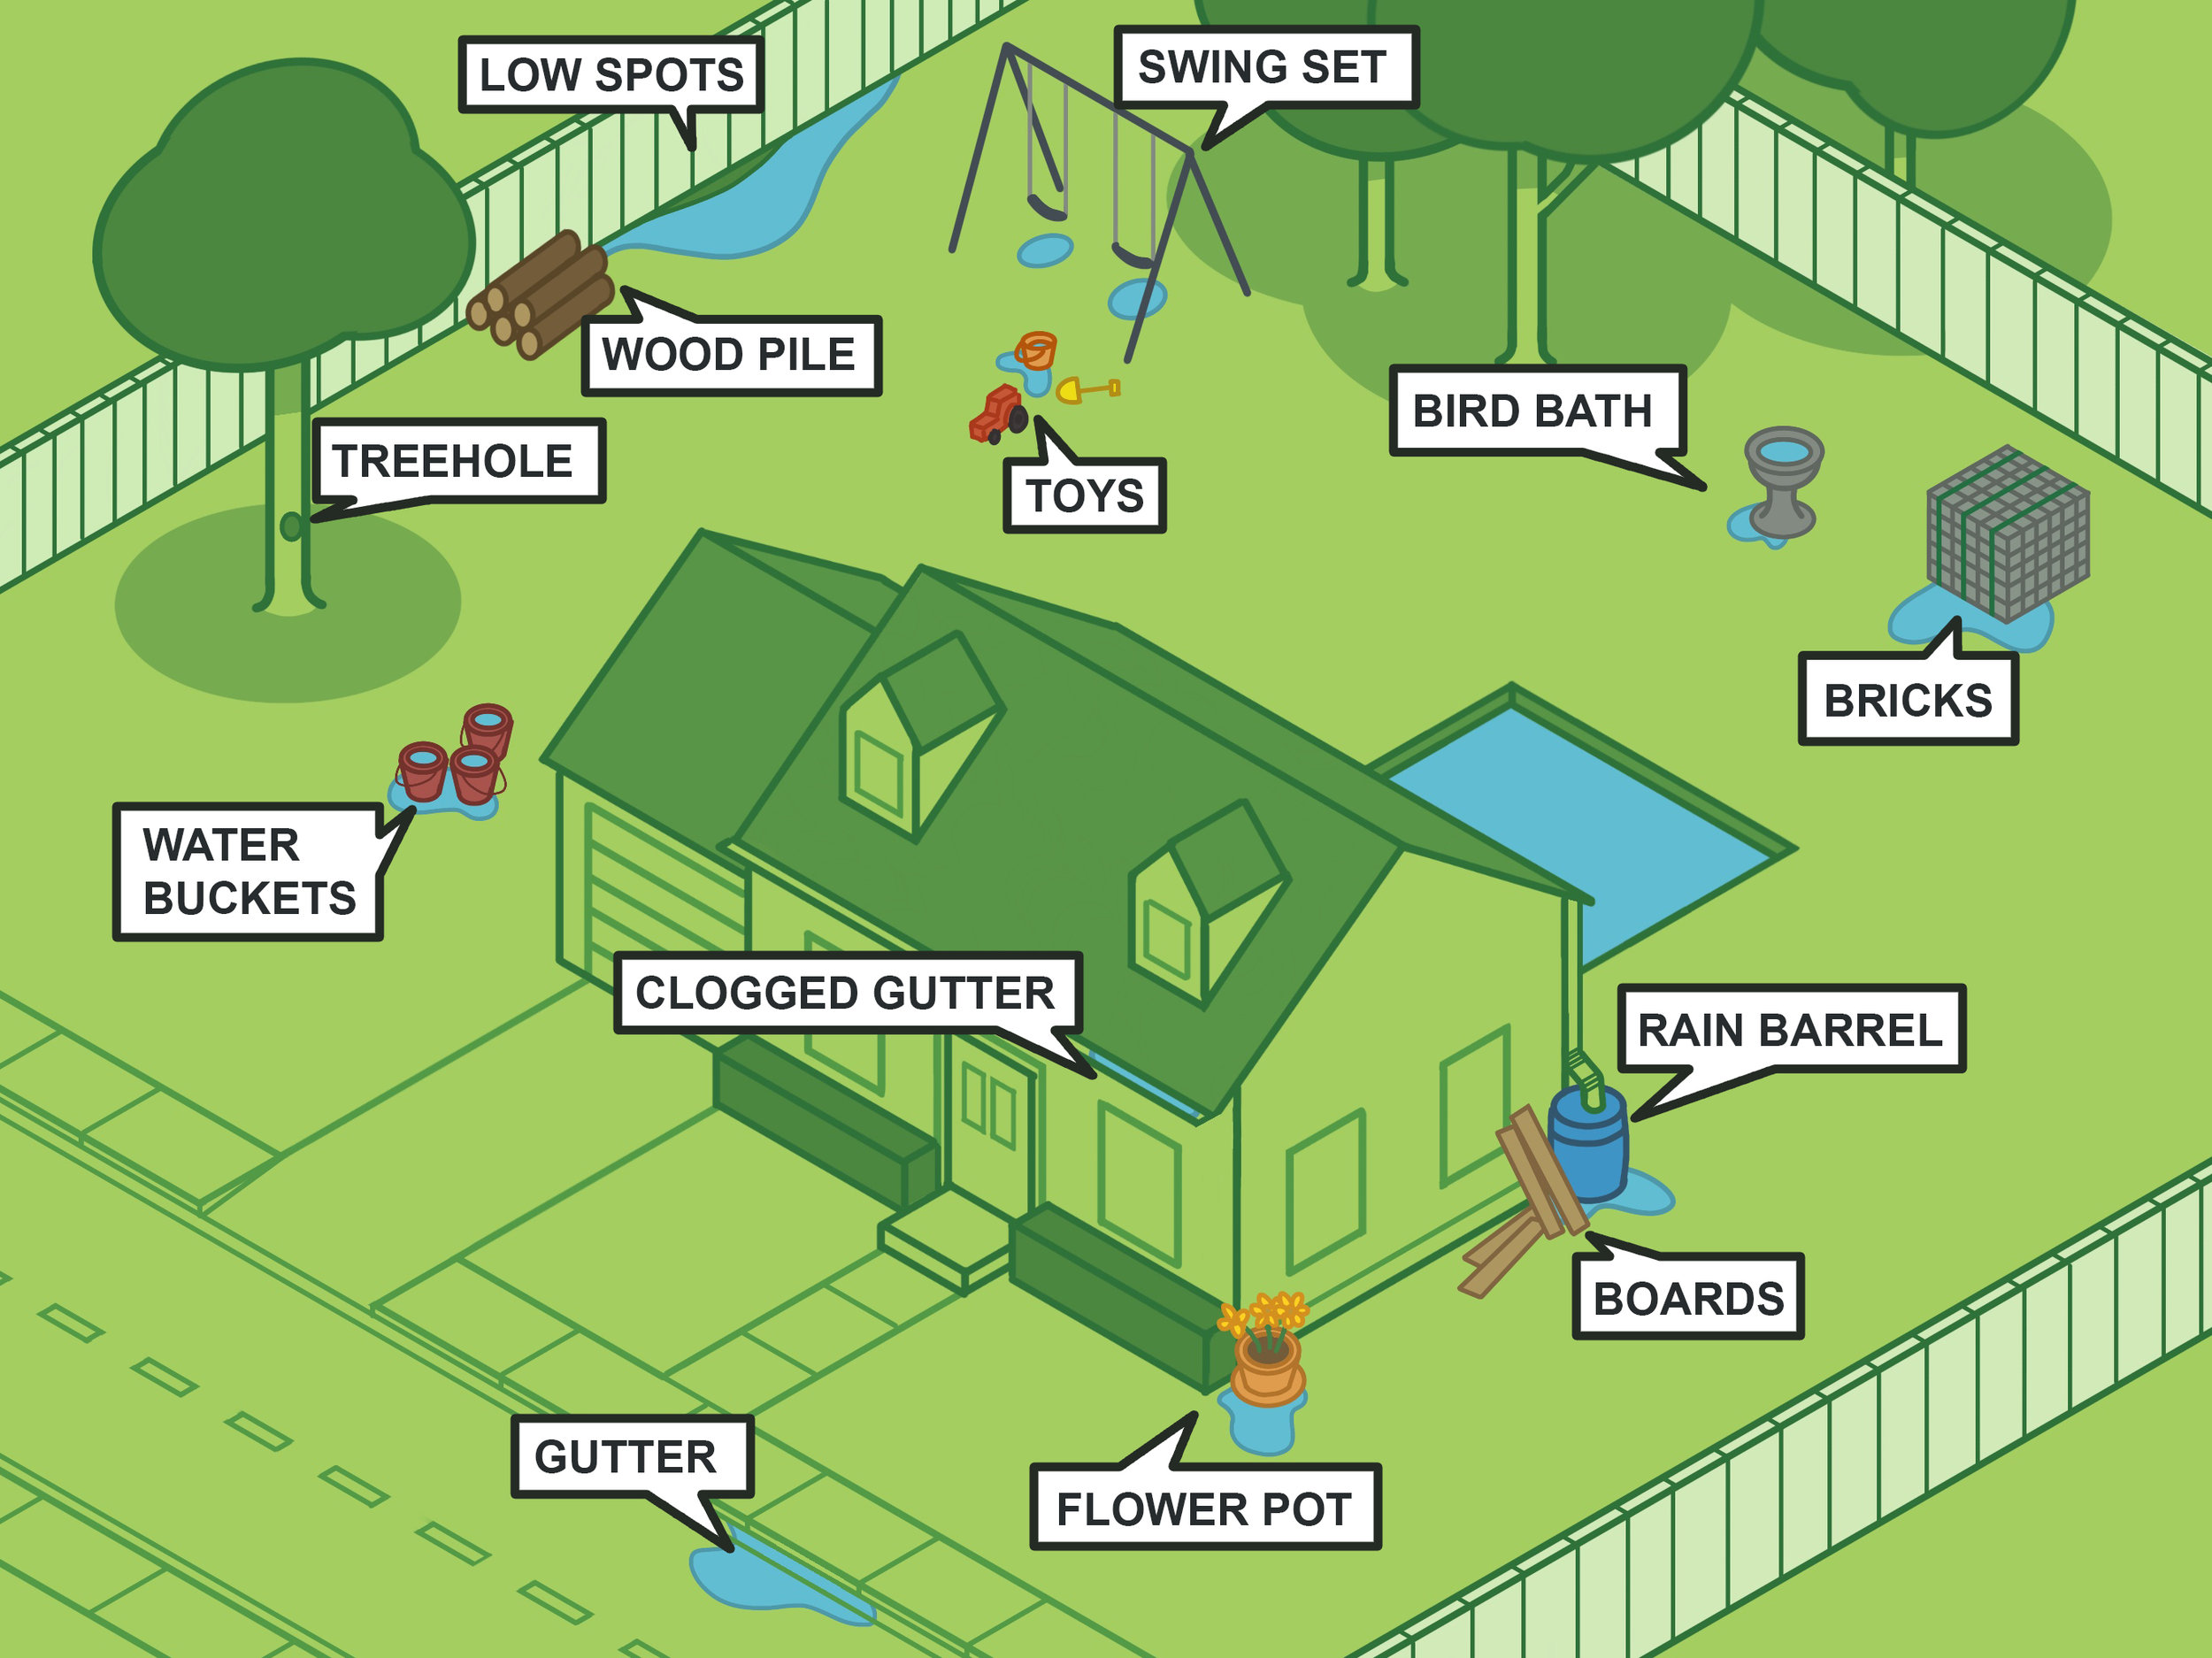 Potential Mosquito breeding sites around the average Texan home.